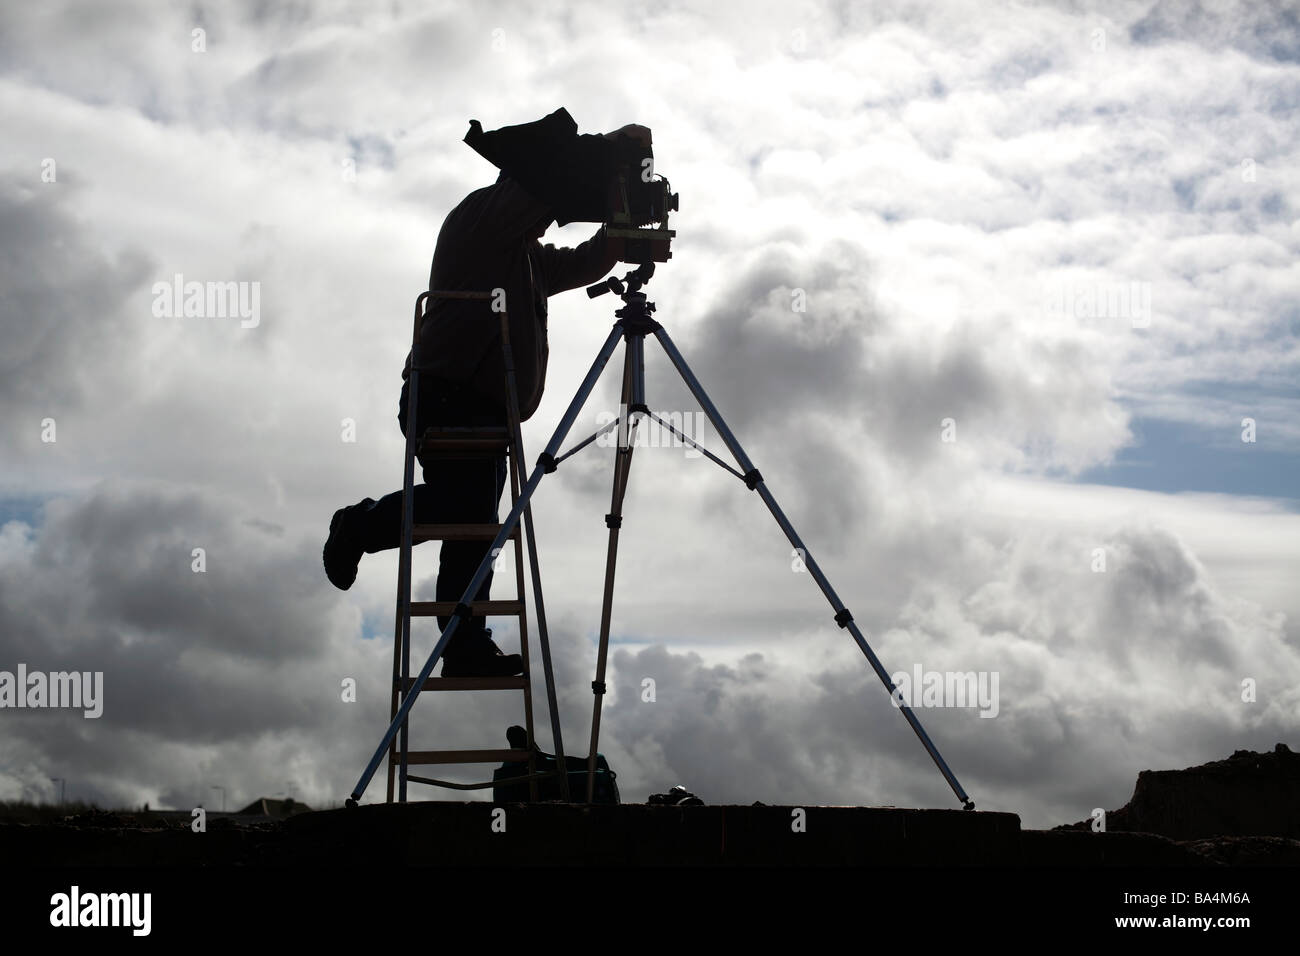 A photographer using a large format camera on a tripod - Stock Image